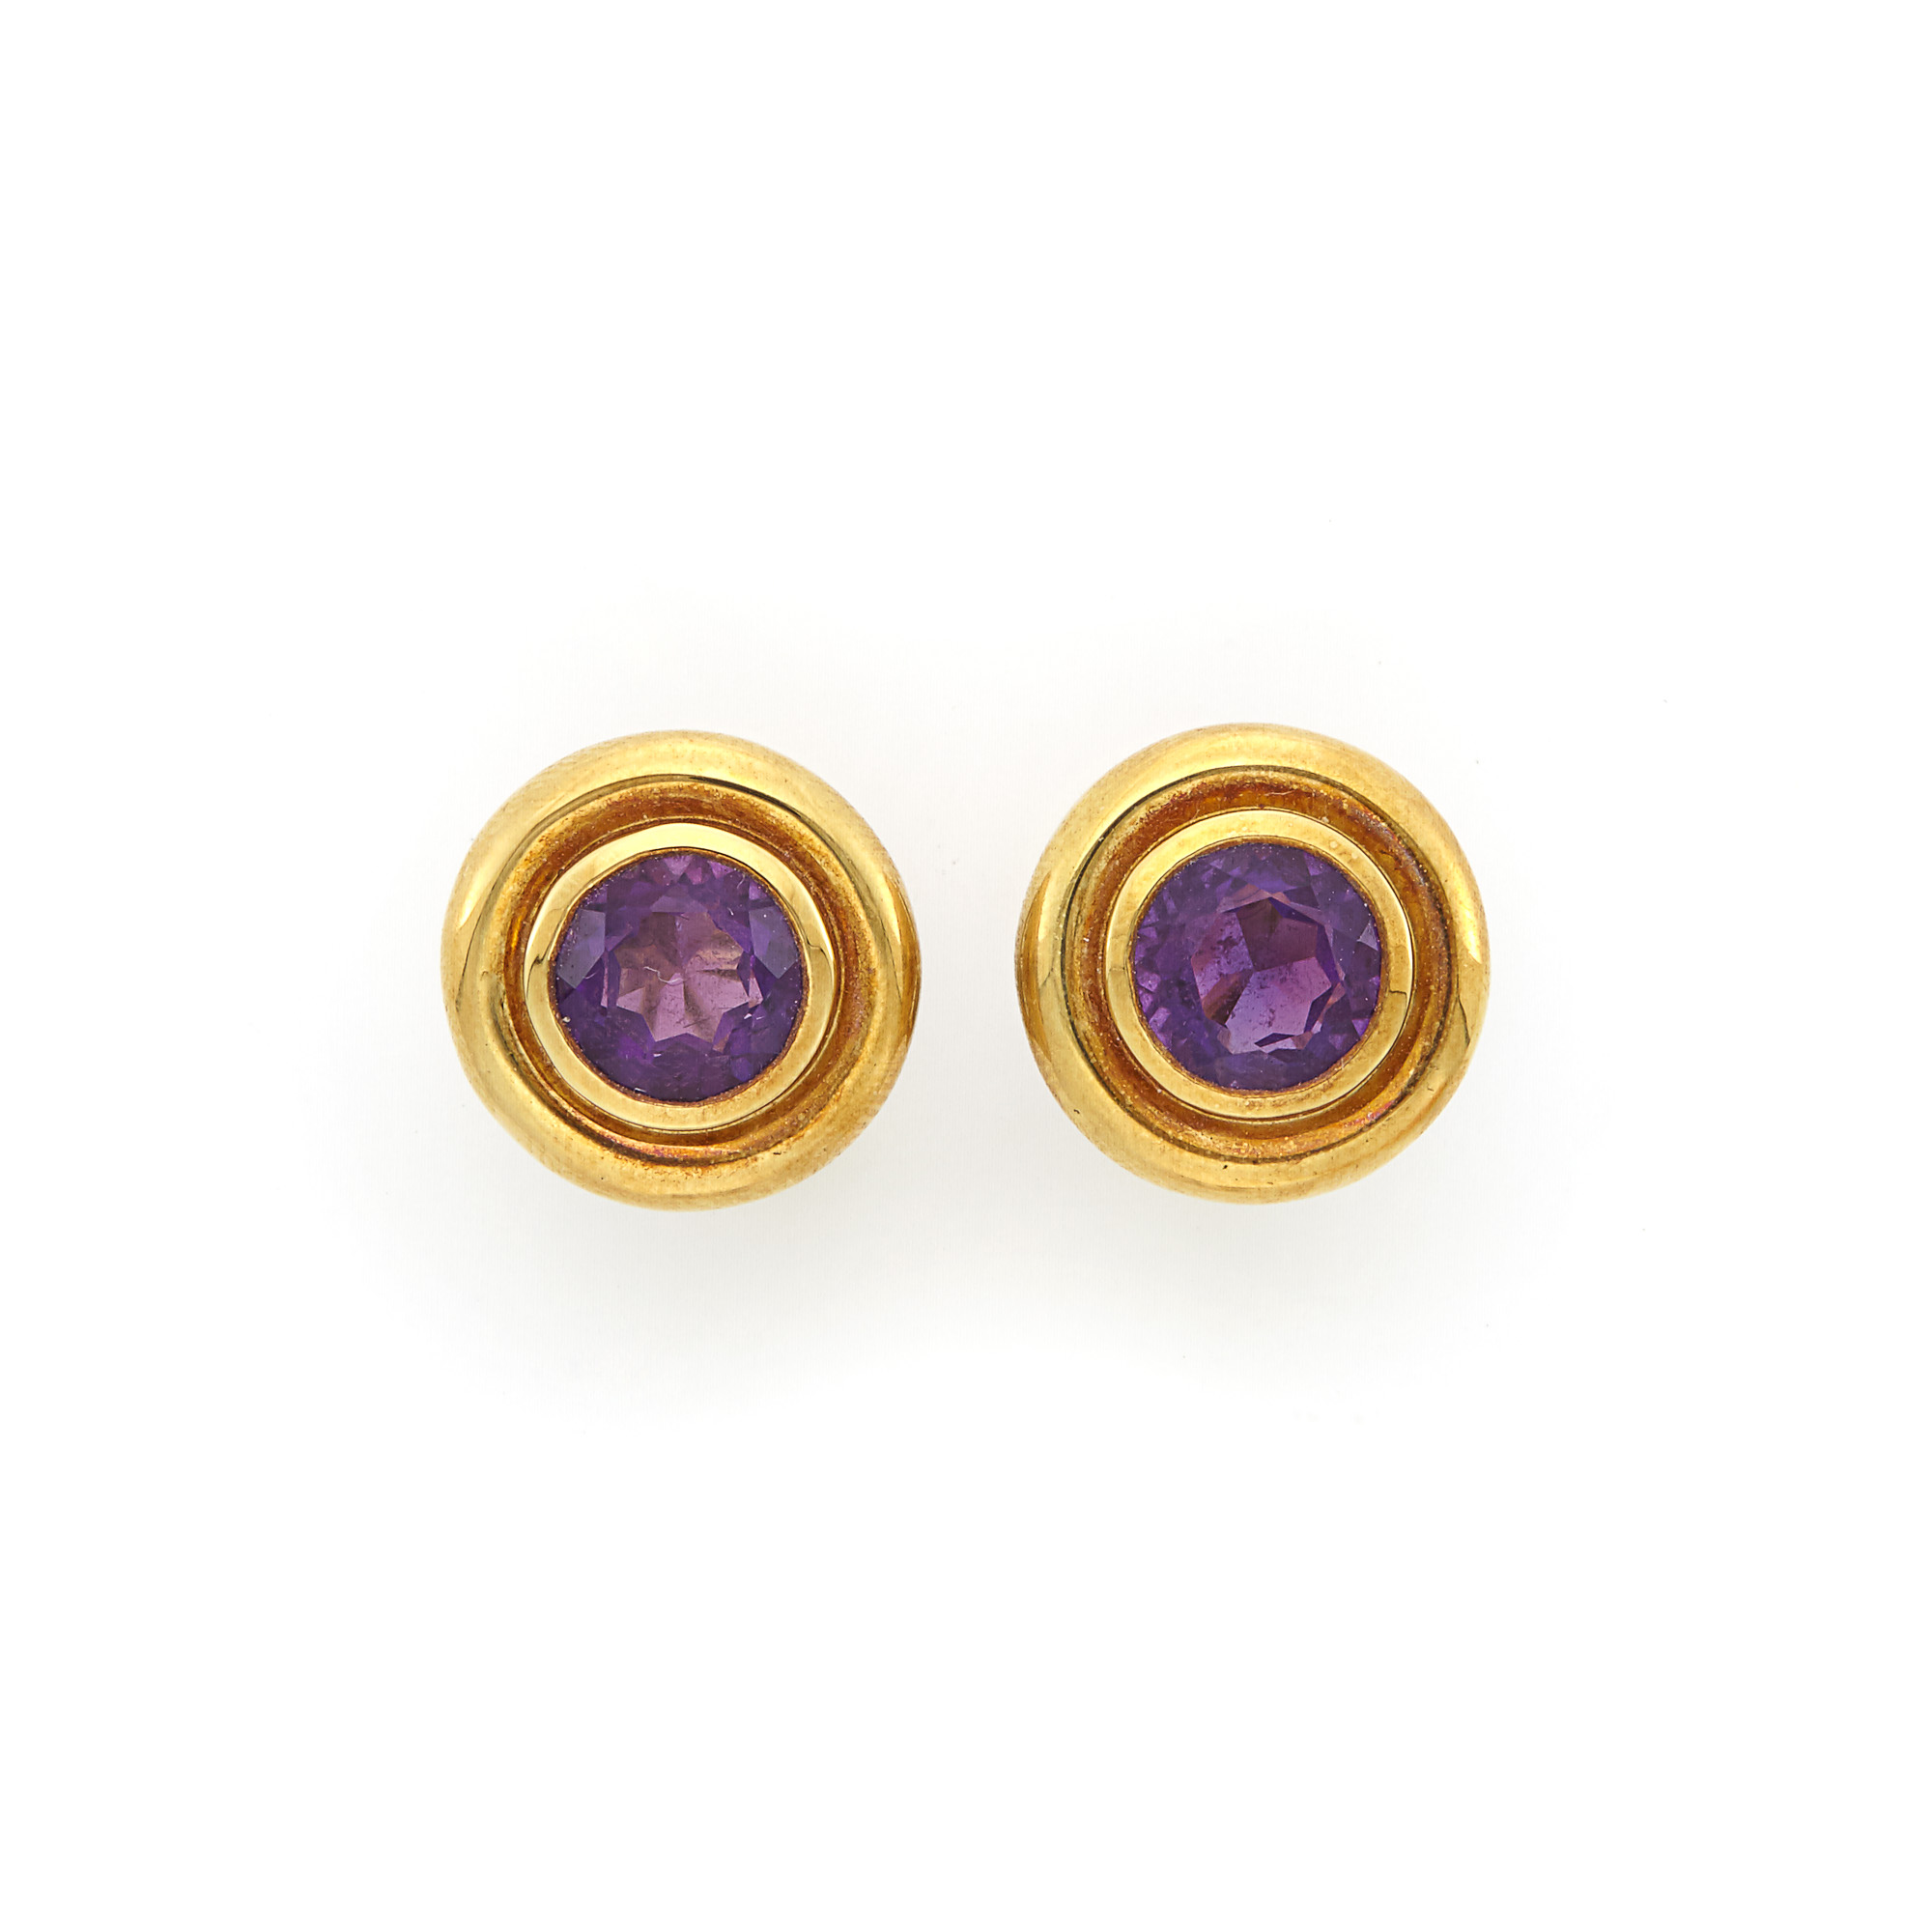 Lot image - Pair of Gold and Amethyst Earrings, Tiffany & Co., Paloma Picasso